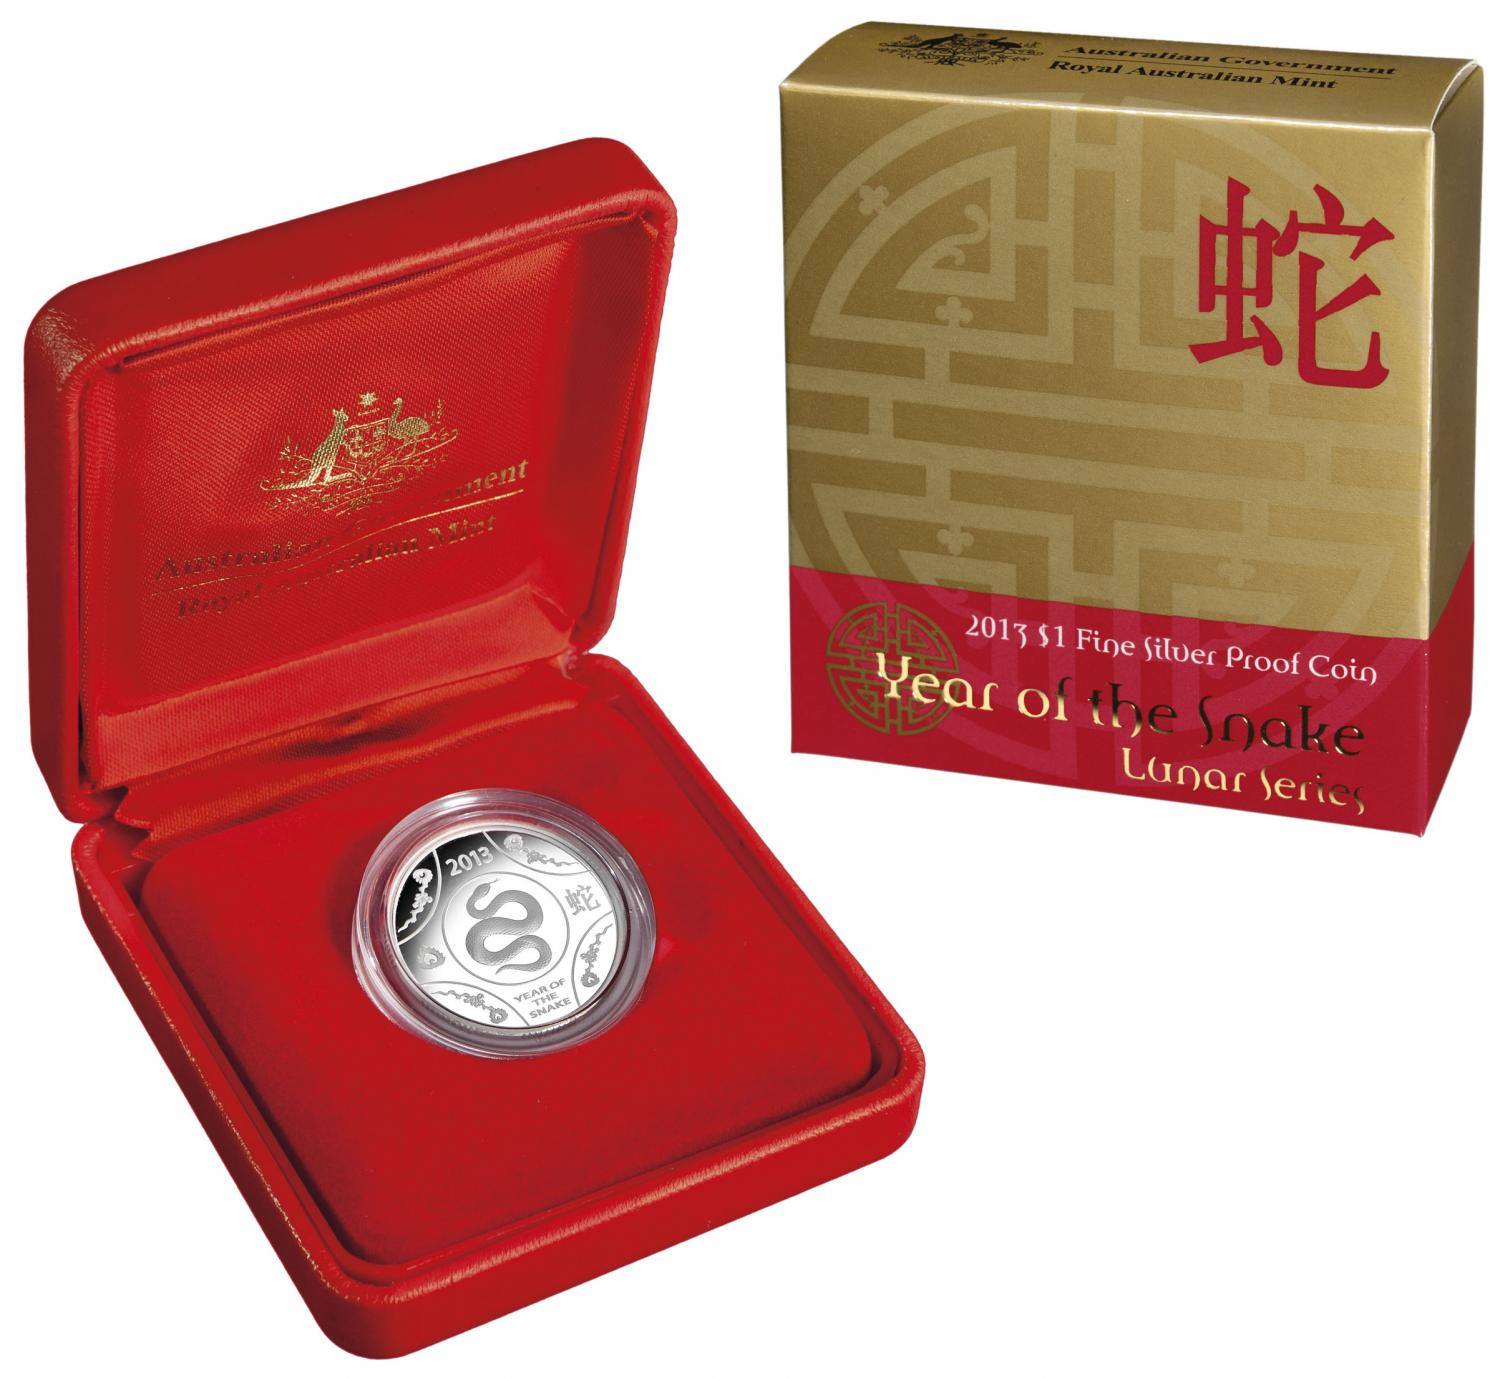 Thumbnail for 2013 Lunar Series - Year of the Snake $1 Silver Proof Coin